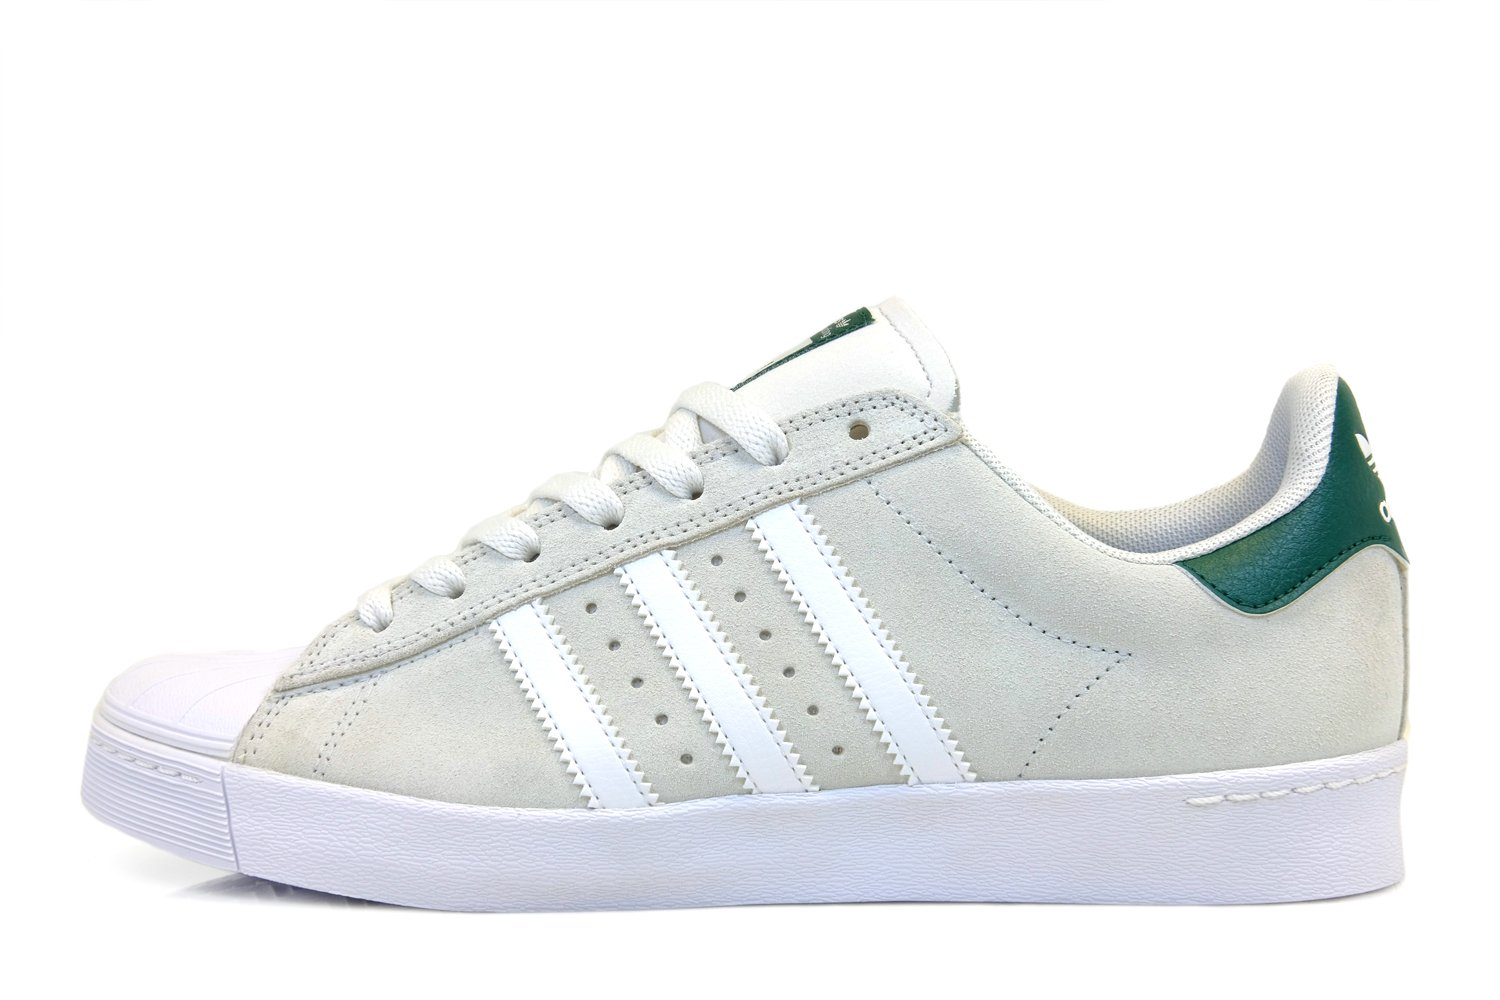 elflj Adidas Superstar Vulc Adv Crystal White / White / Collegiate Green